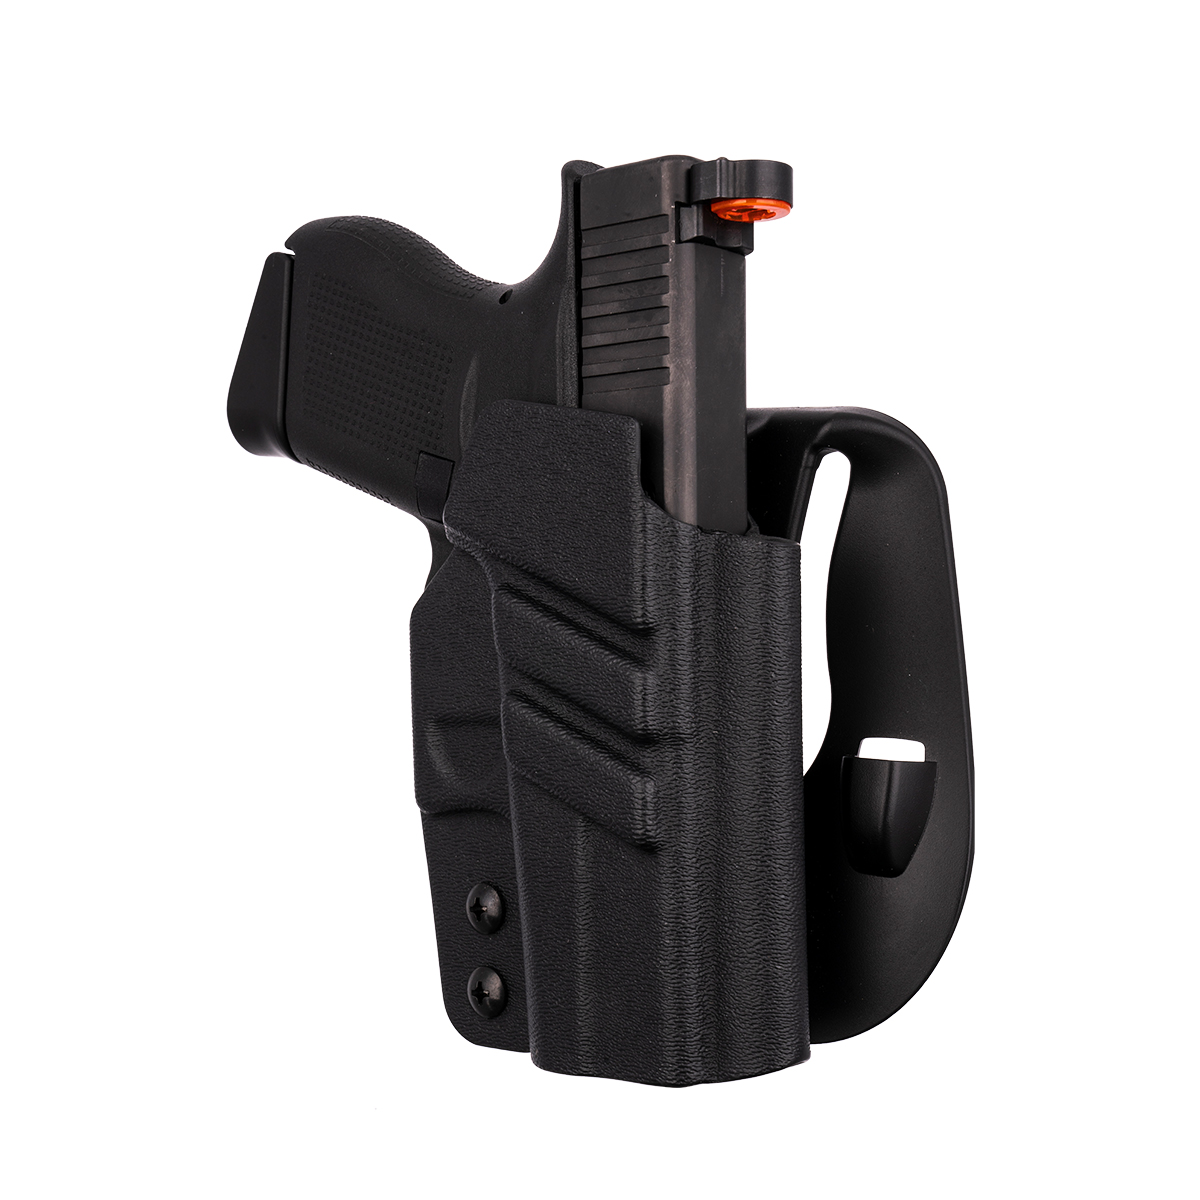 """Leather Paddle Holster Open Top Fits Glock 43X Subcompact 9mm 3.41/""""BBL #1491#"""